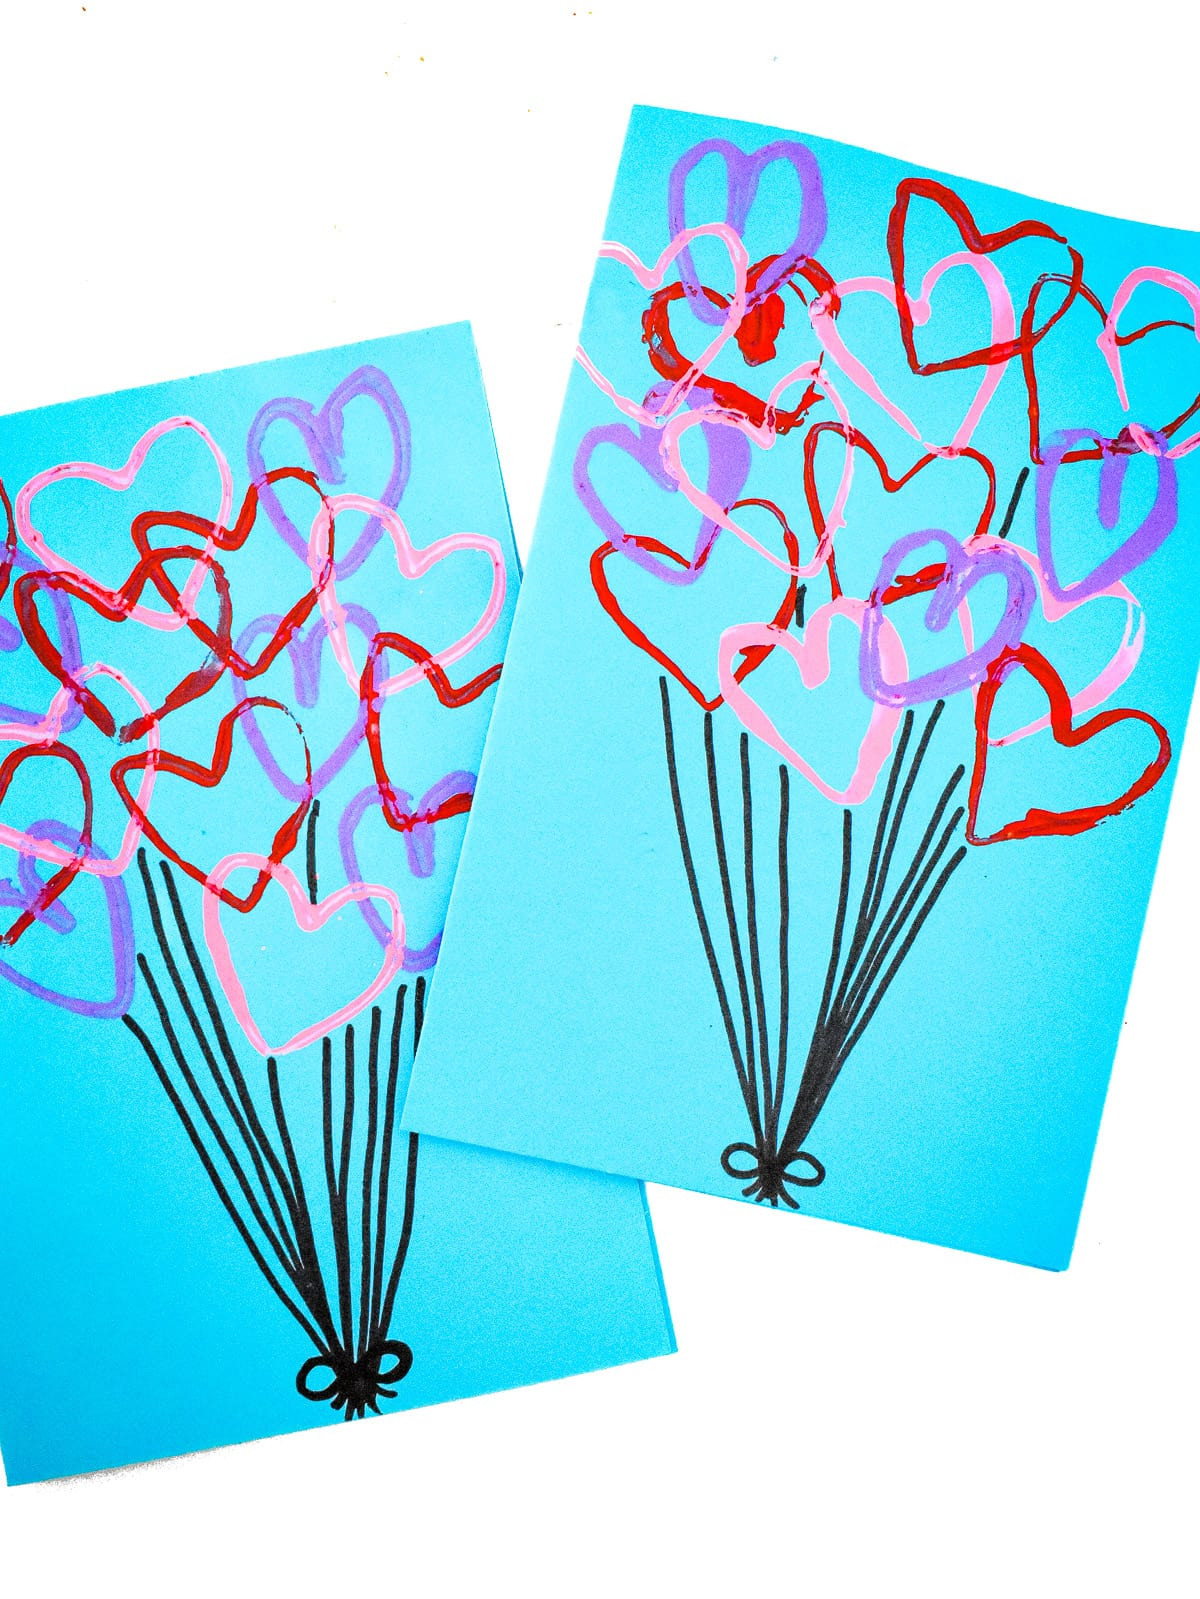 Image of two blue cards with heart stamped on them